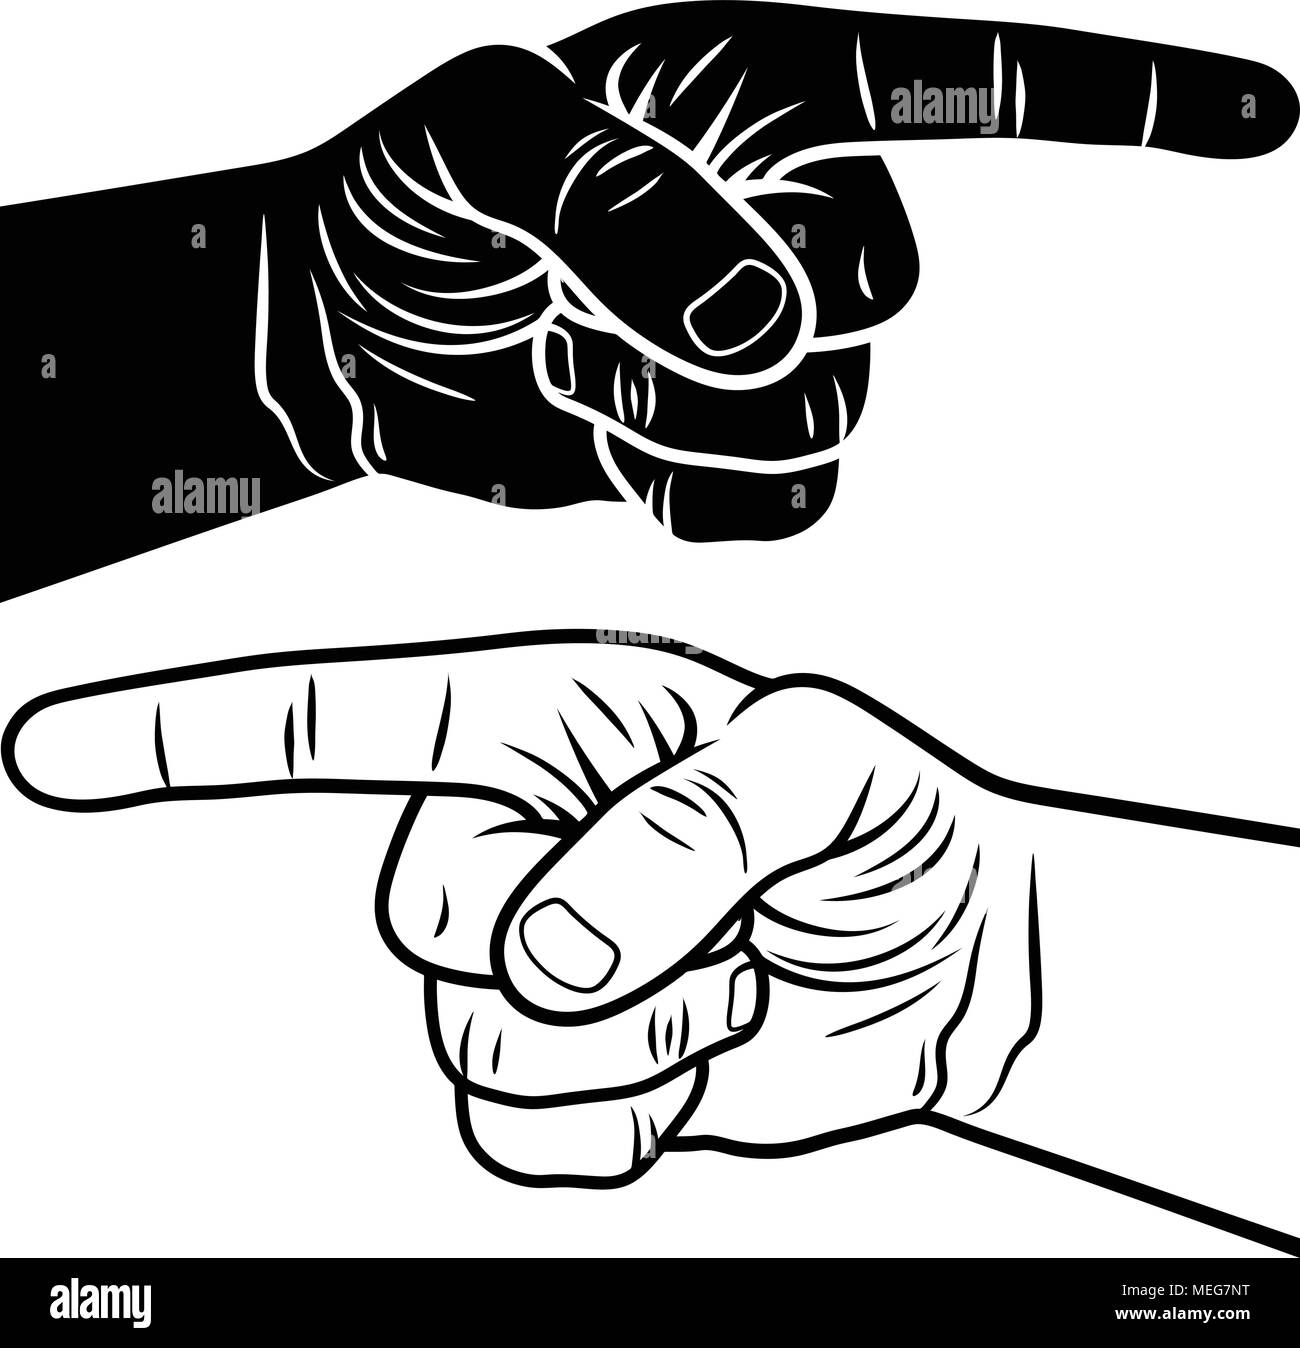 pointing hand vector illustration of a pointing finger hand drawn sketch stock vector image art alamy https www alamy com pointing hand vector illustration of a pointing finger hand drawn sketch image181066196 html